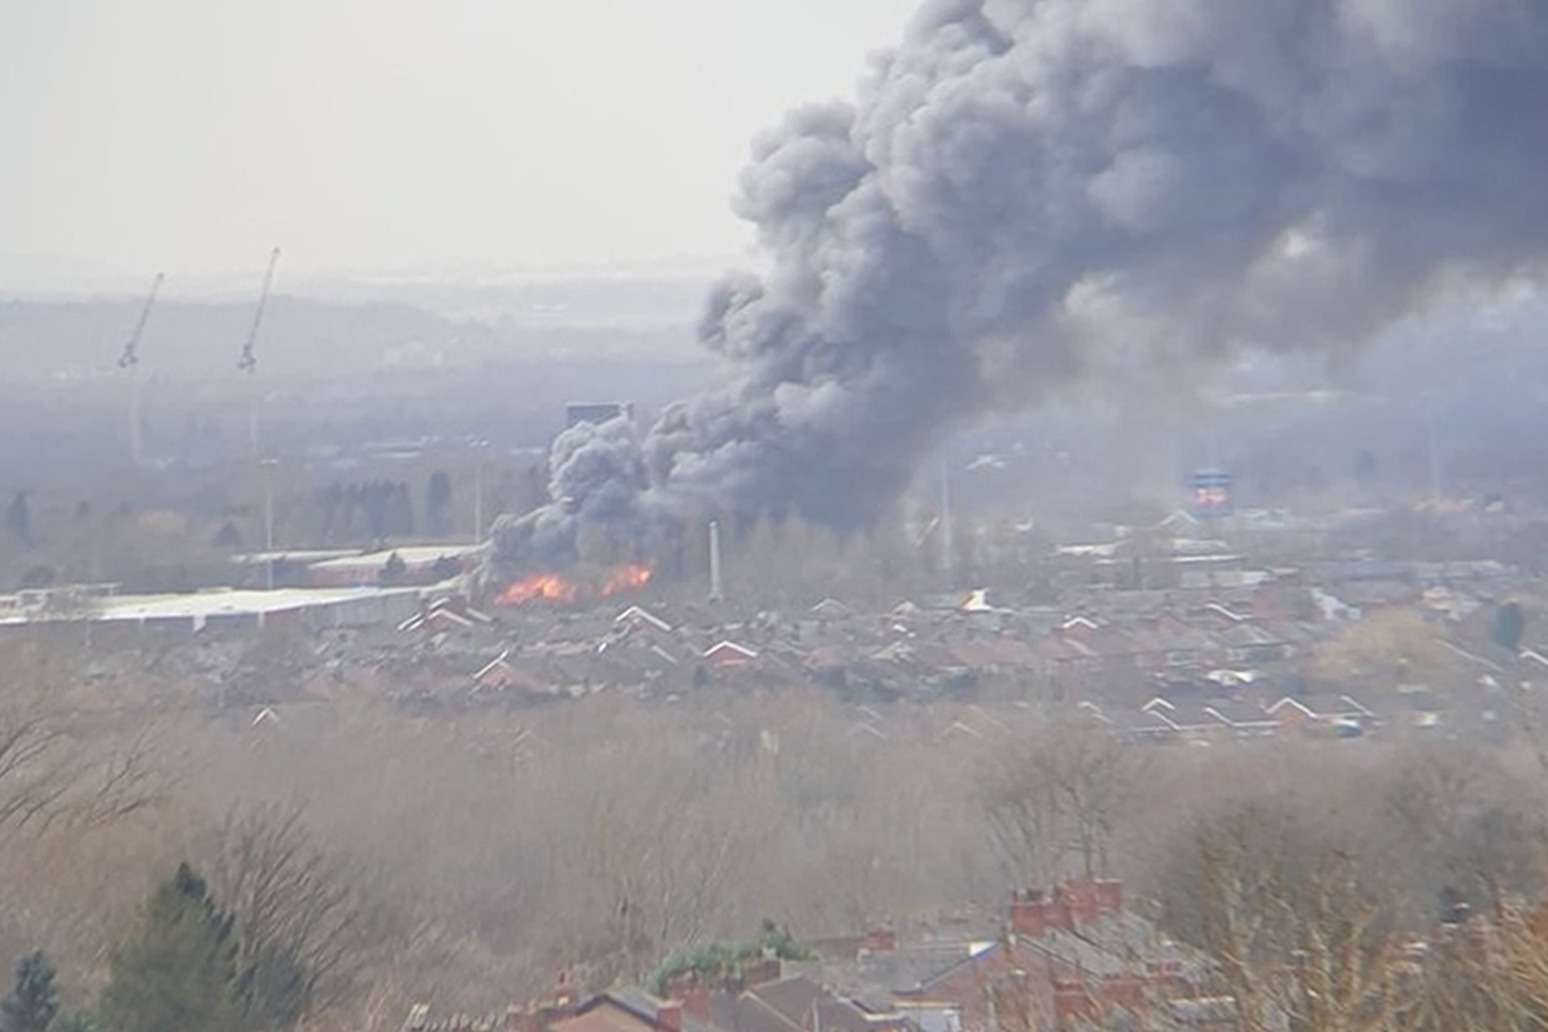 Major incident declared after large fire hits Manchester warehouse